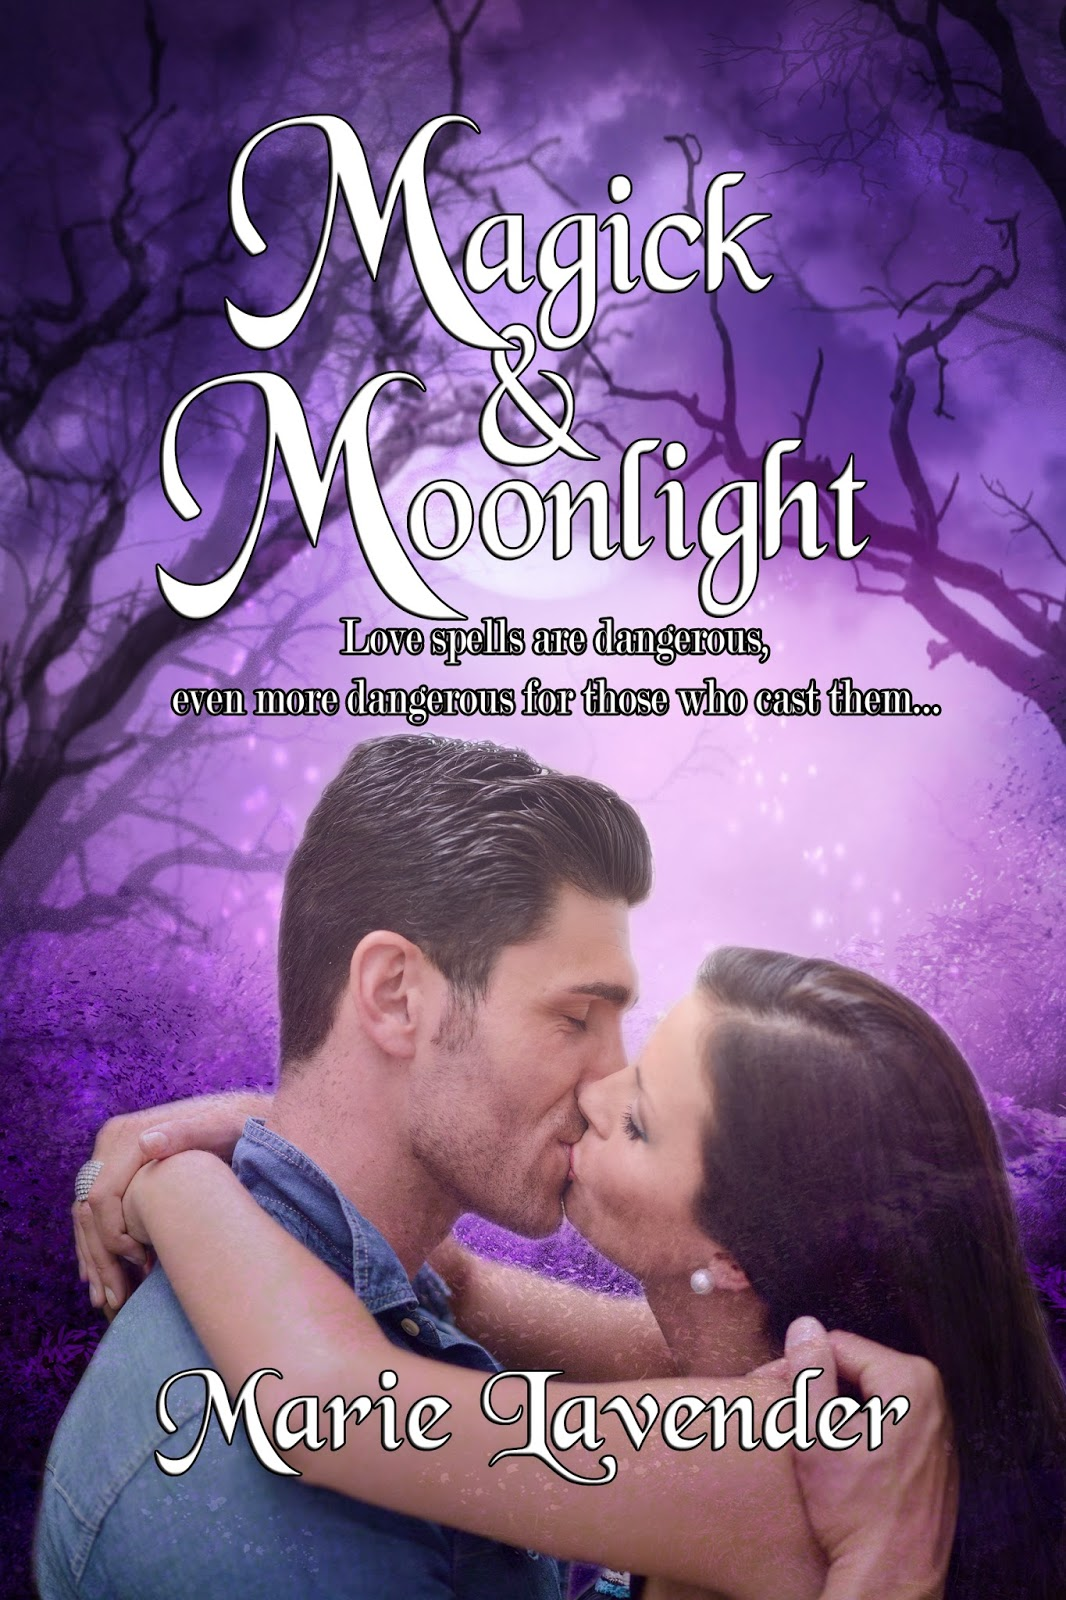 http://www.amazon.com/Magick-Moonlight-Marie-Lavender-ebook/dp/B00IRKN5P2/ref=cm_cr_pr_pb_i